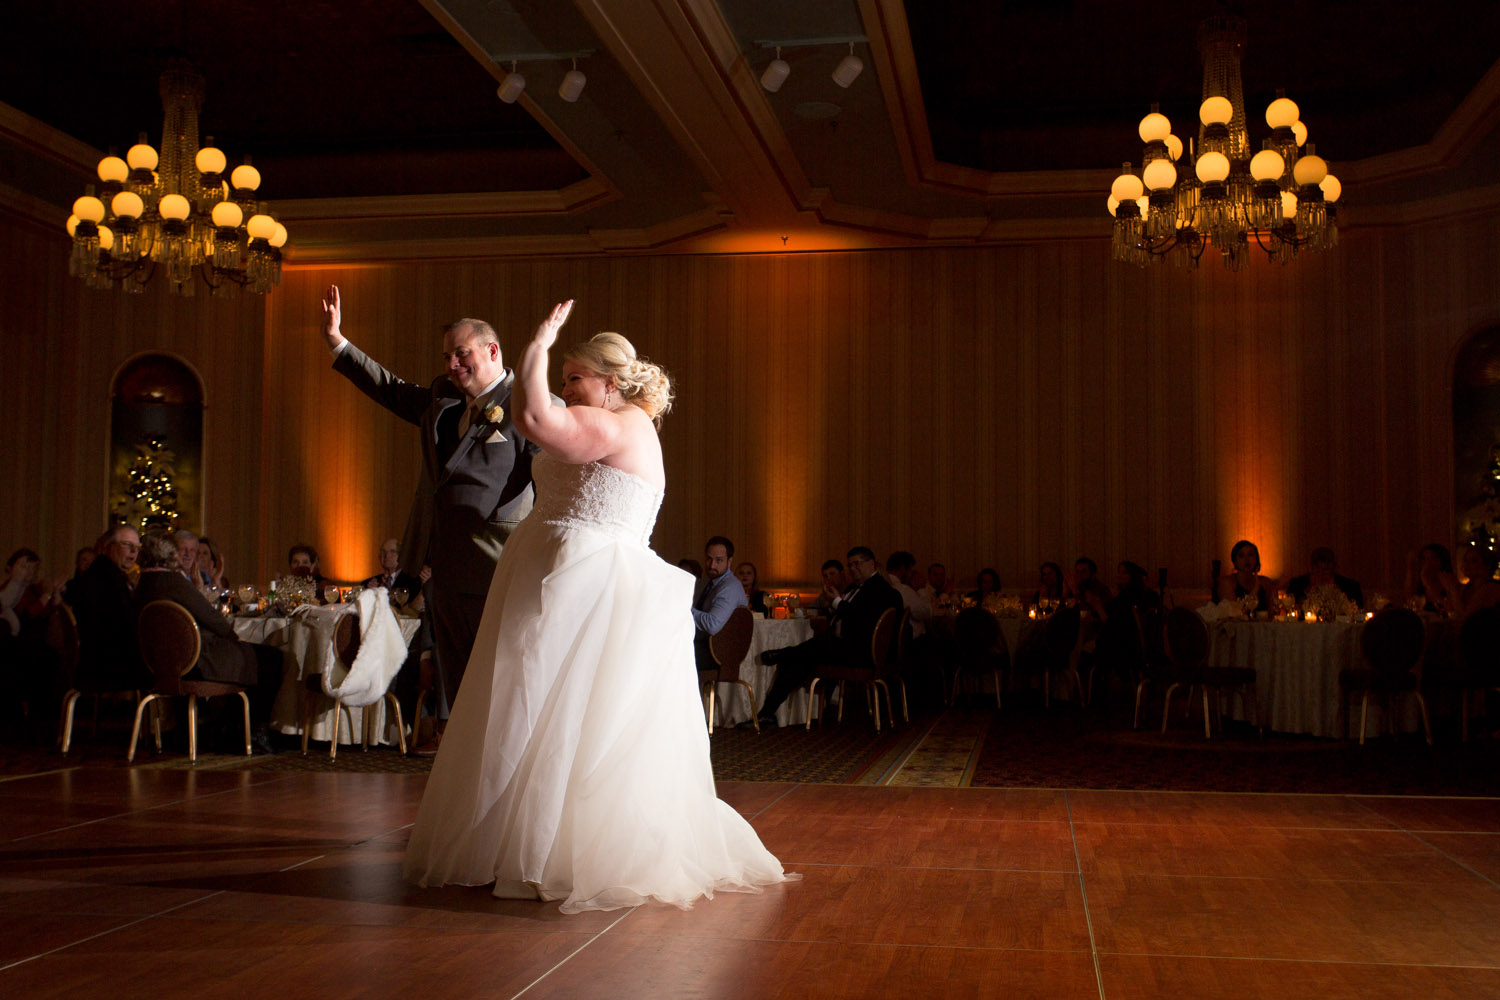 20-the-st-paul-hotel-minnesota-wedding-reception-photographer-first-dance-mahonen-photography.jpg